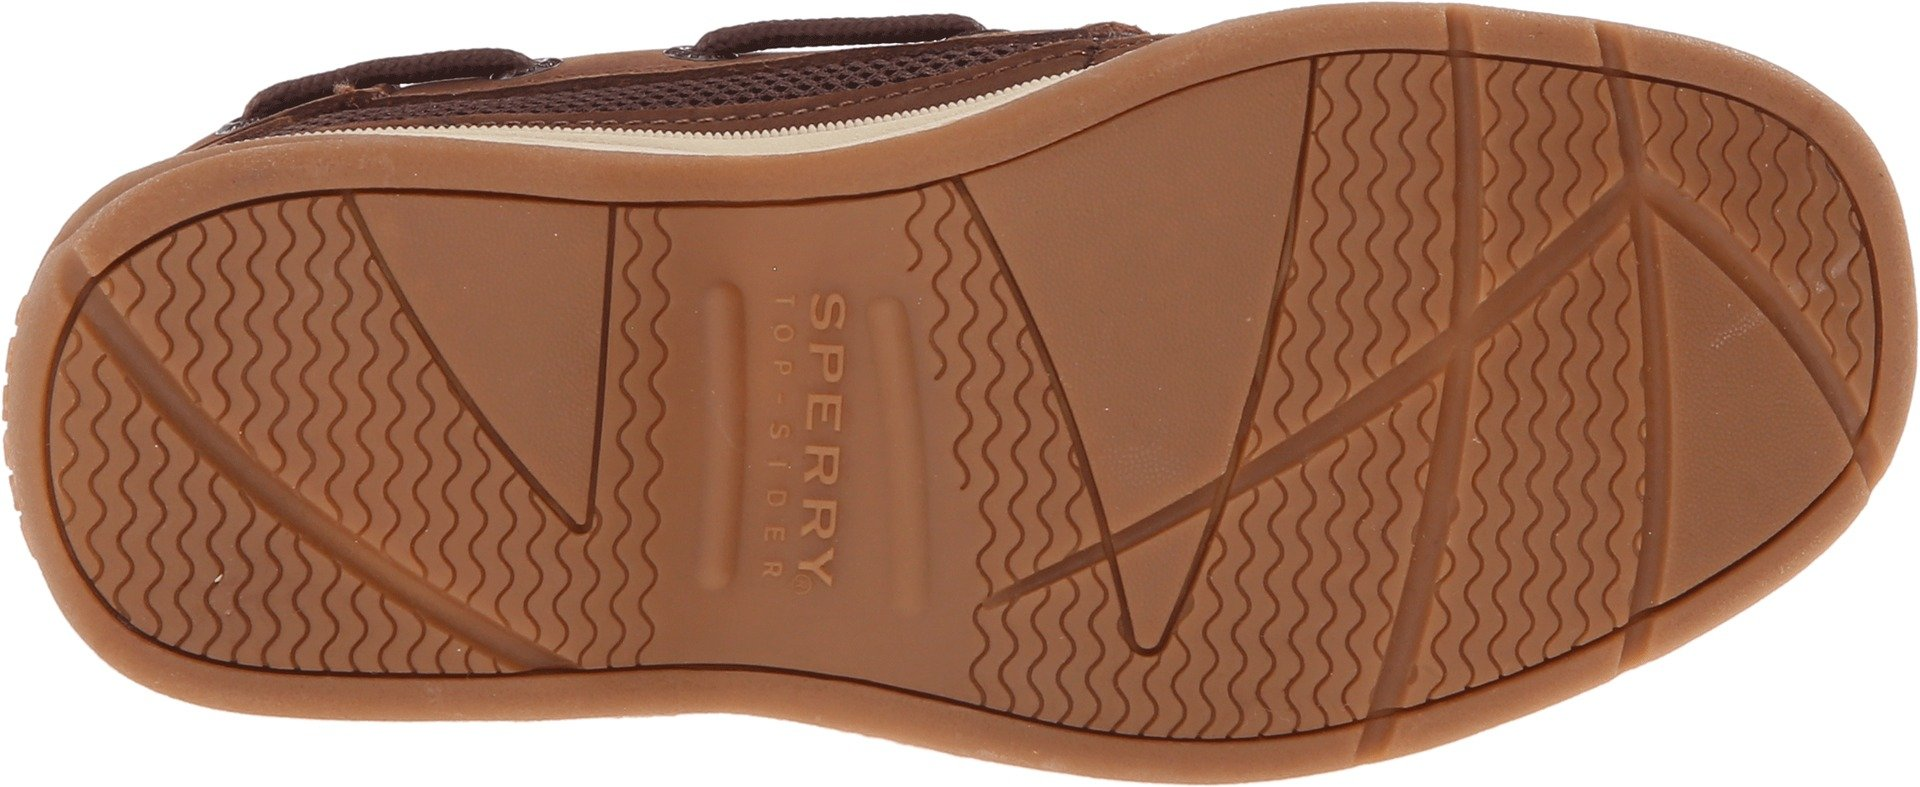 Sperry Boy's Kids, Lanyard Boat Shoes Brown 4 M by Sperry (Image #3)